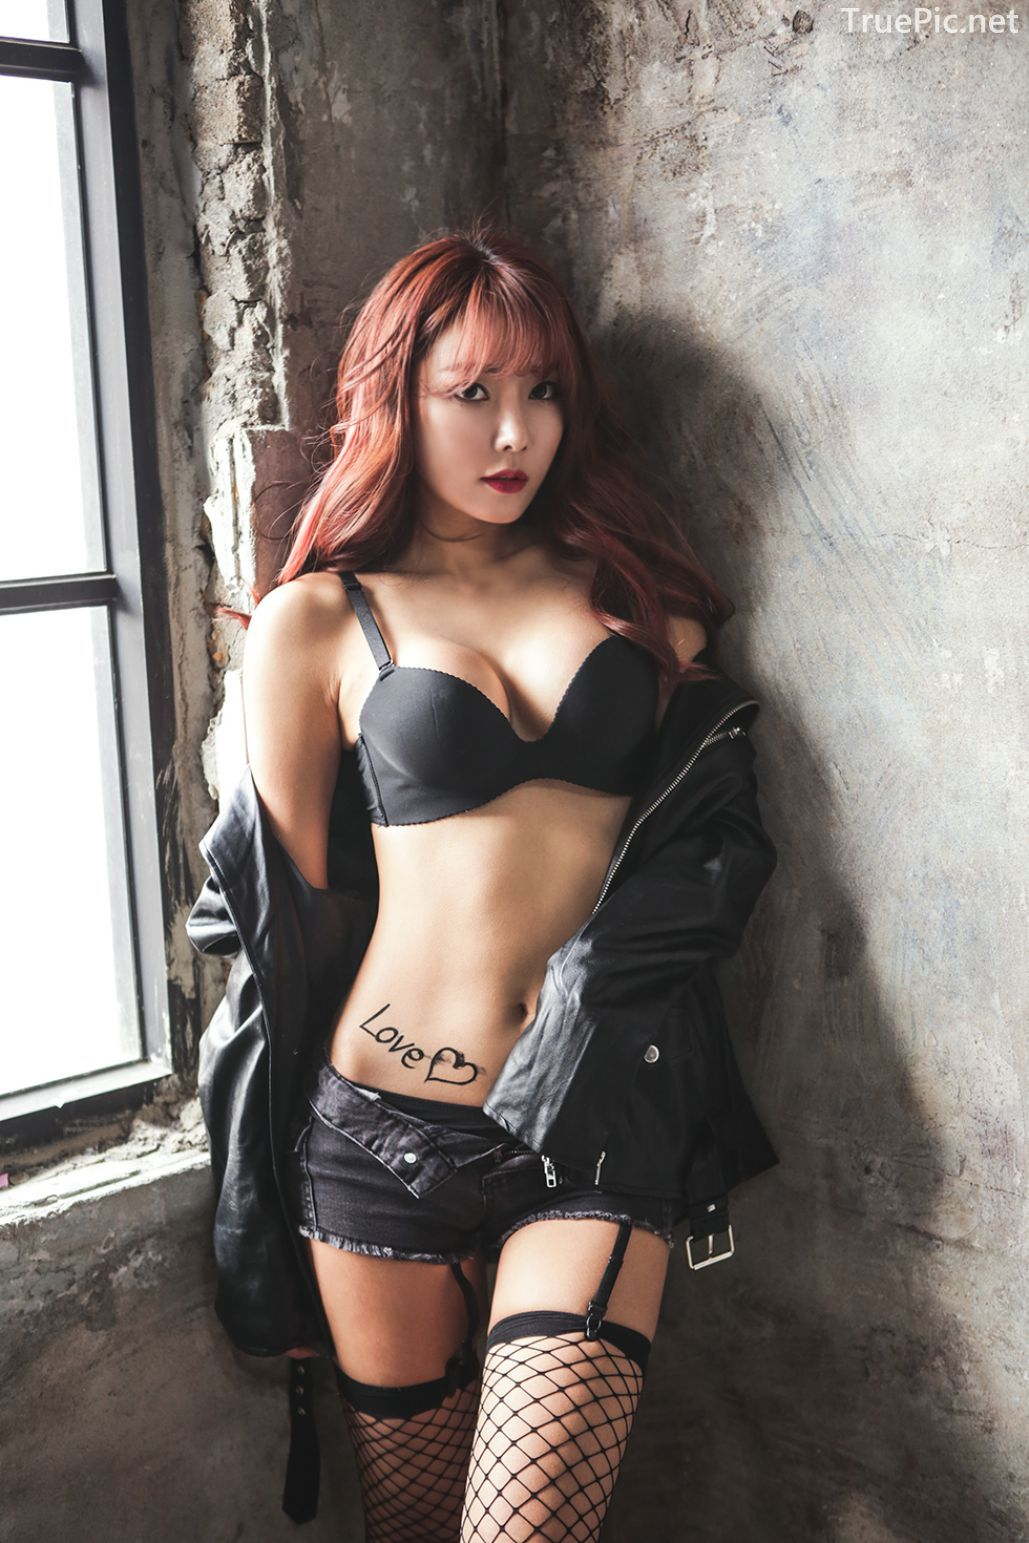 Korean-Lingerie-Fashion-Lee-Da-Hee-model-Tell-Me-What-You-Want-To-Do-TruePic.net- Picture 1